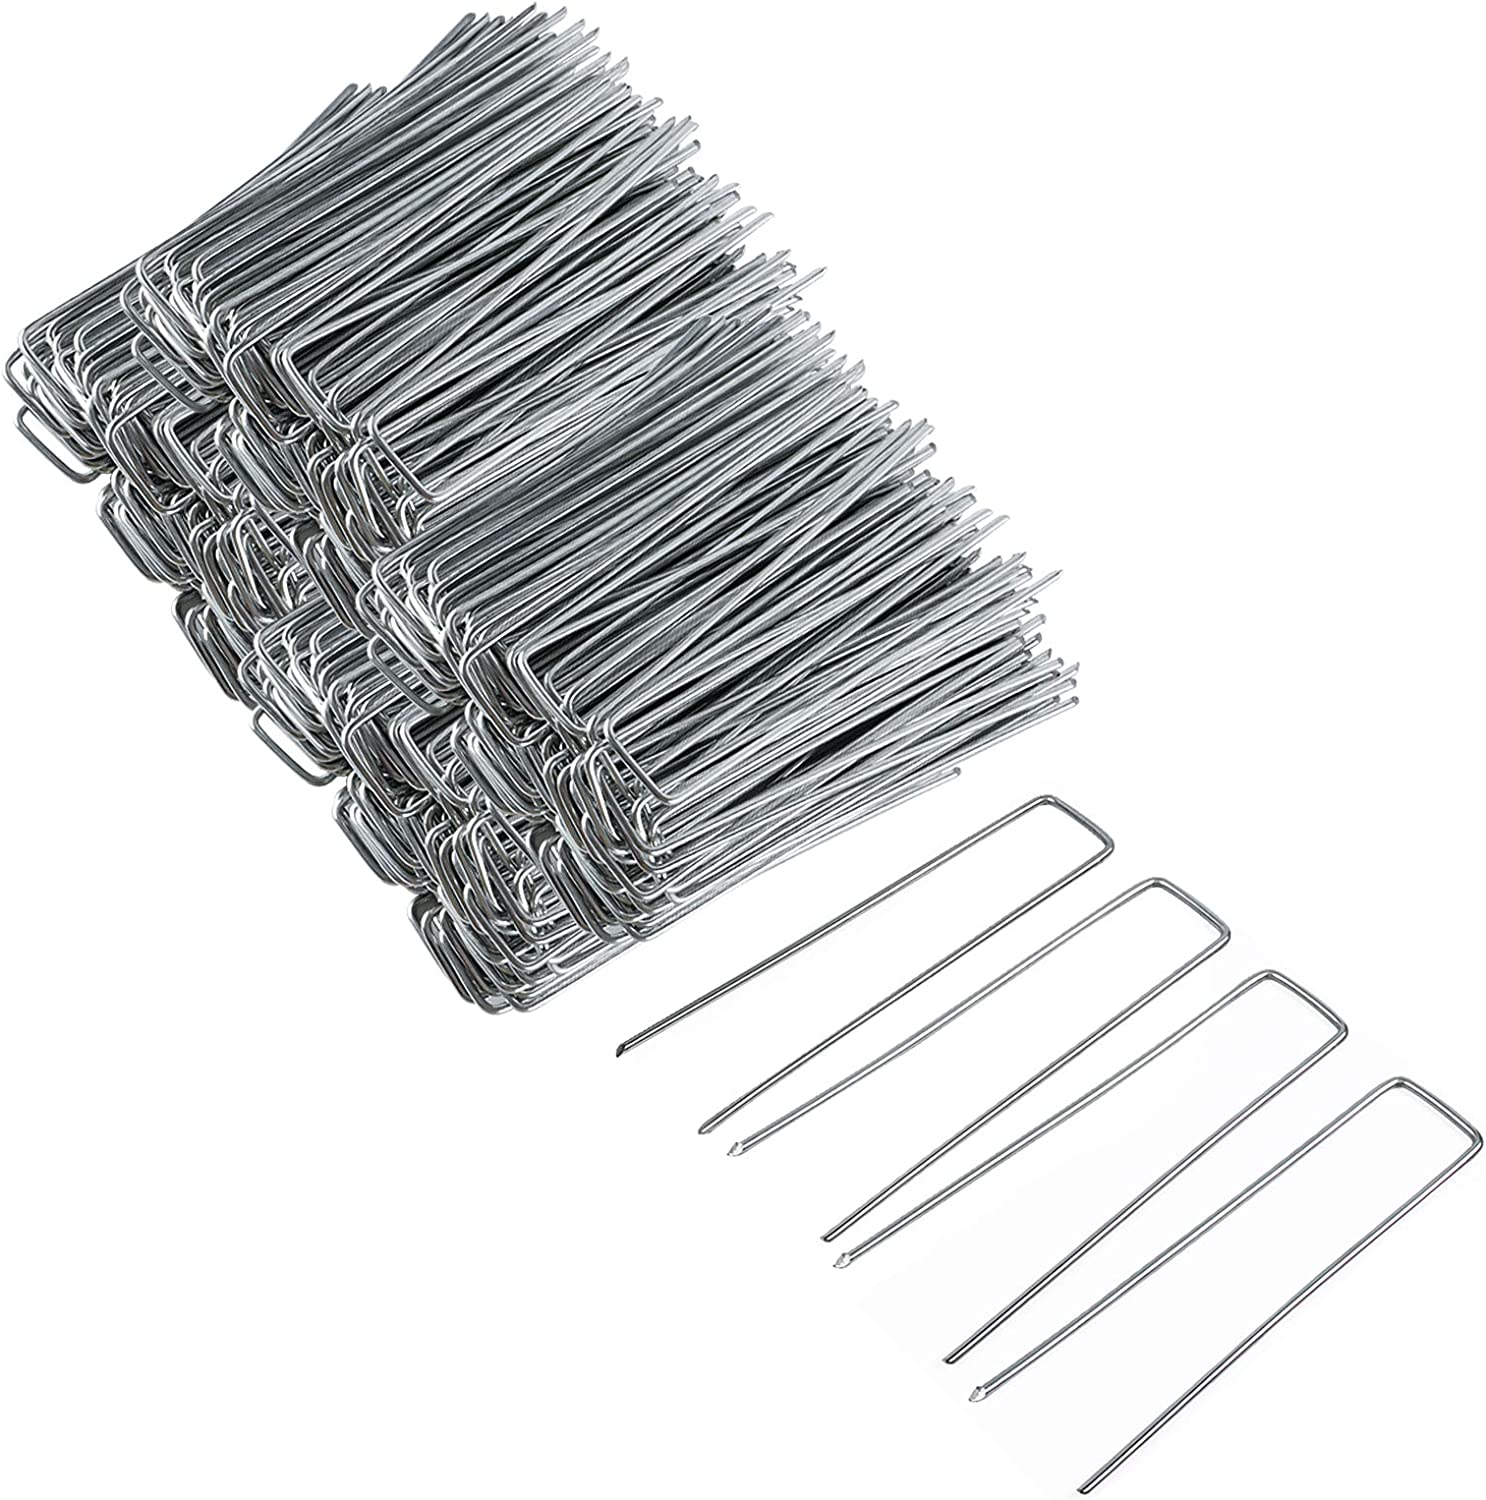 FEED GARDEN 6 Inch Galvanized Garden Stakes 200 Pack Landscape Fabric Staples,Heavy Duty Landscape Pins,for Fixing Edging,Plant Roots,Landscape Fabric Plastic,Electric Wires,Fences, Hoses